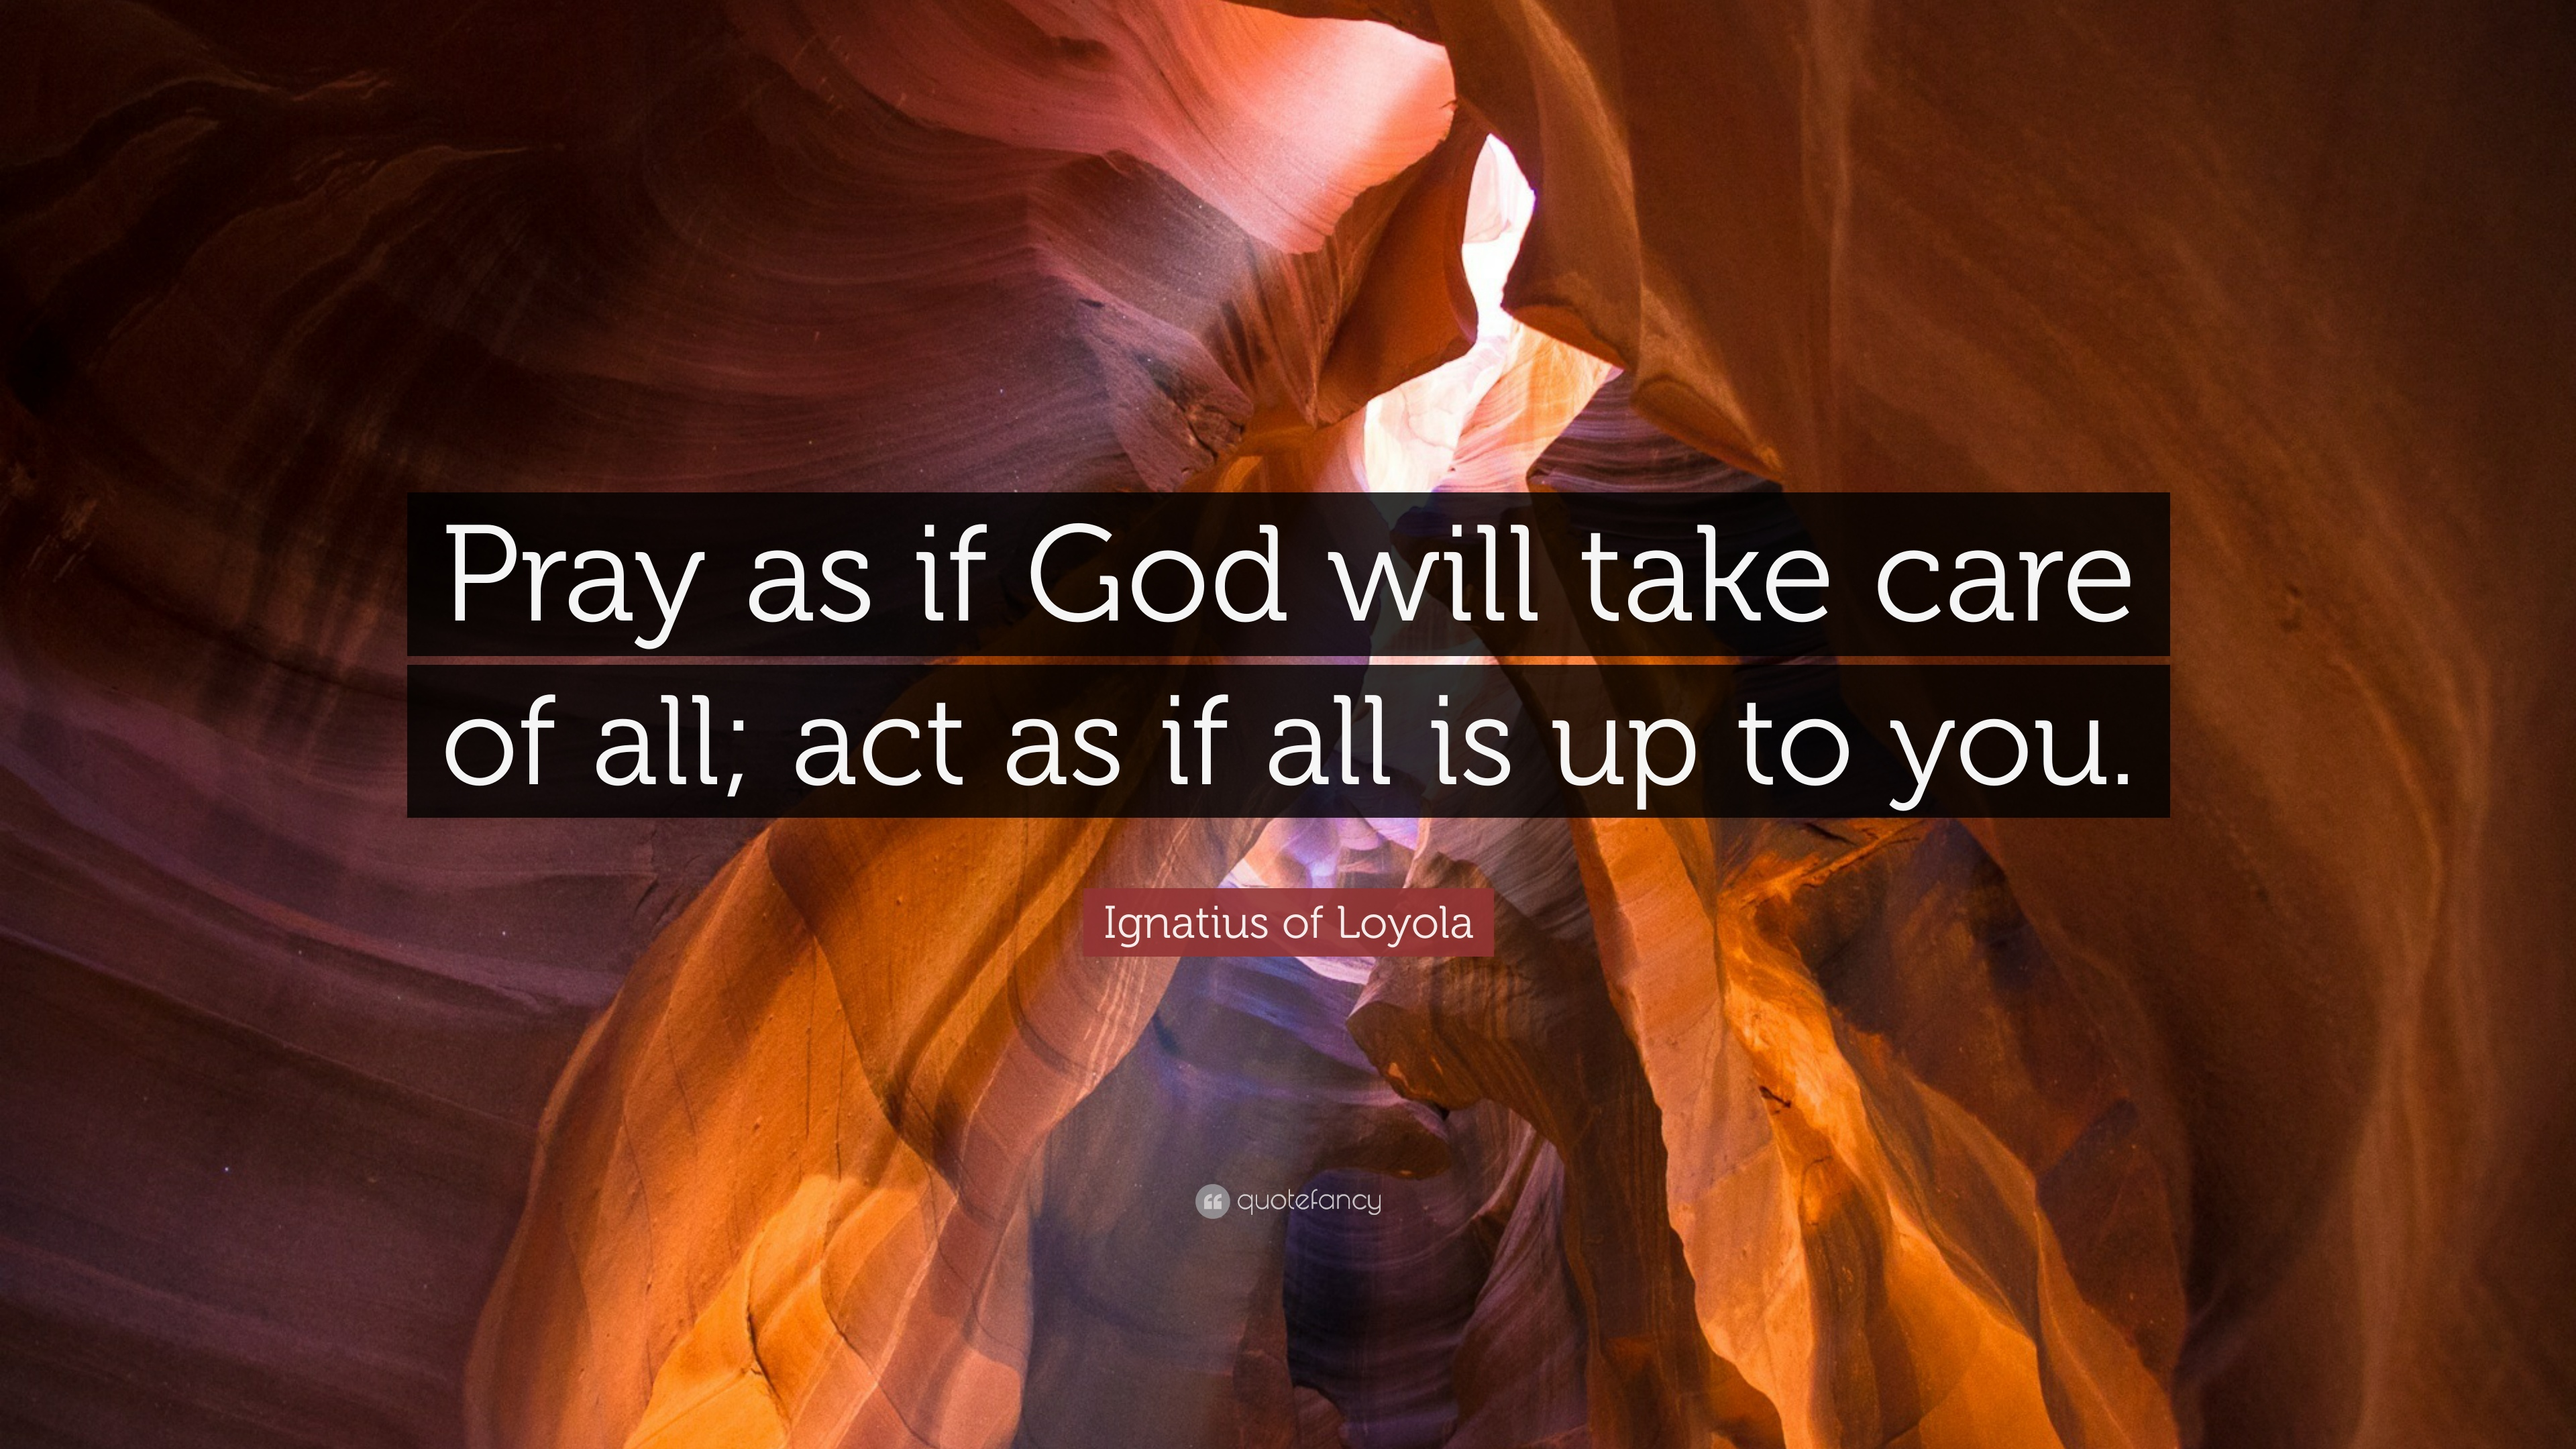 Ignatius Of Loyola Quote Pray As If God Will Take Care Of All Act